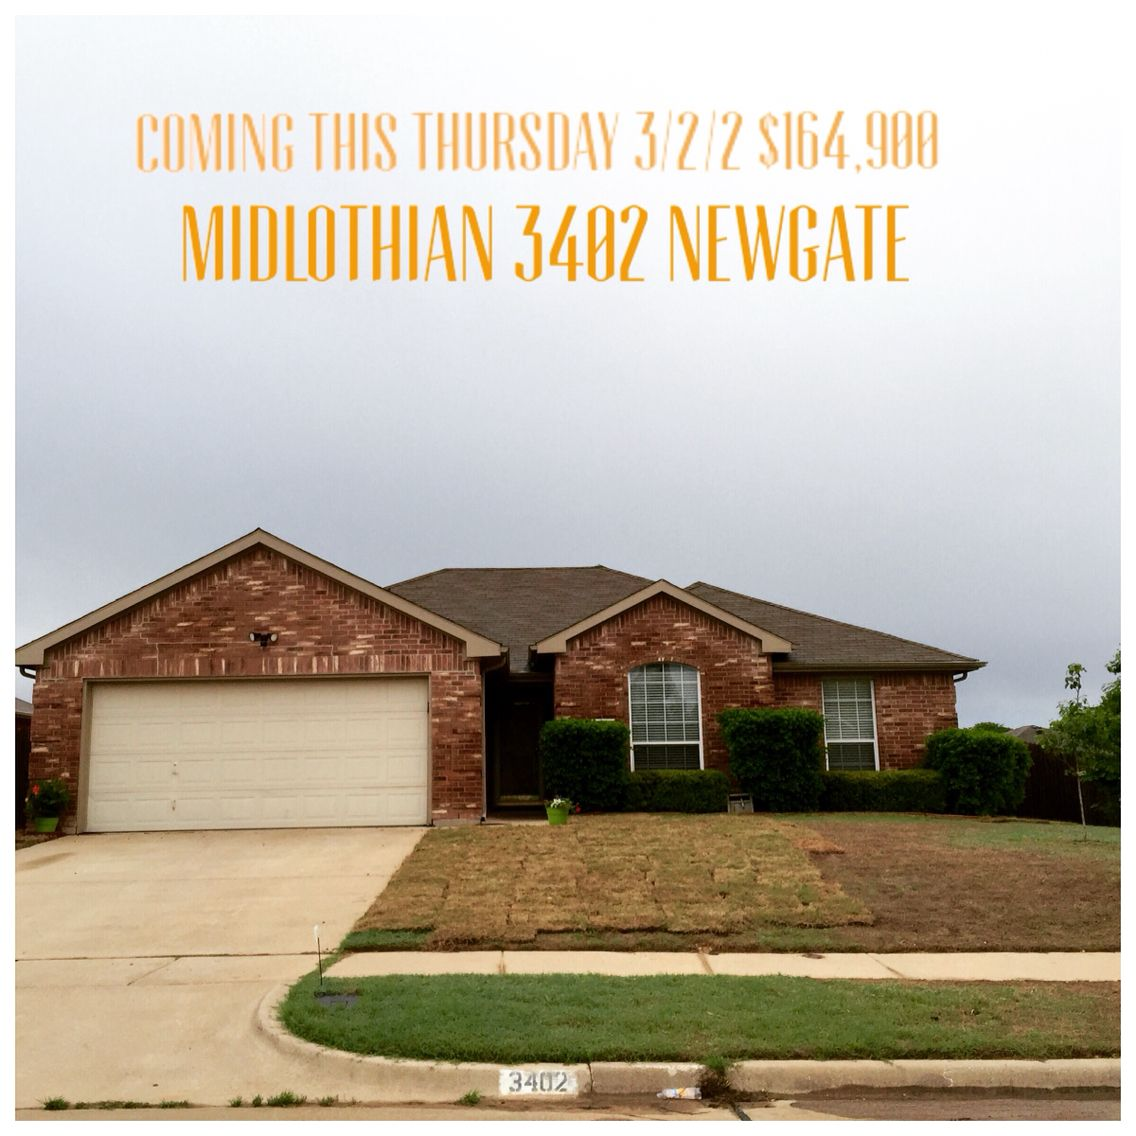 3402 newgate in midlothian 164900 322 available